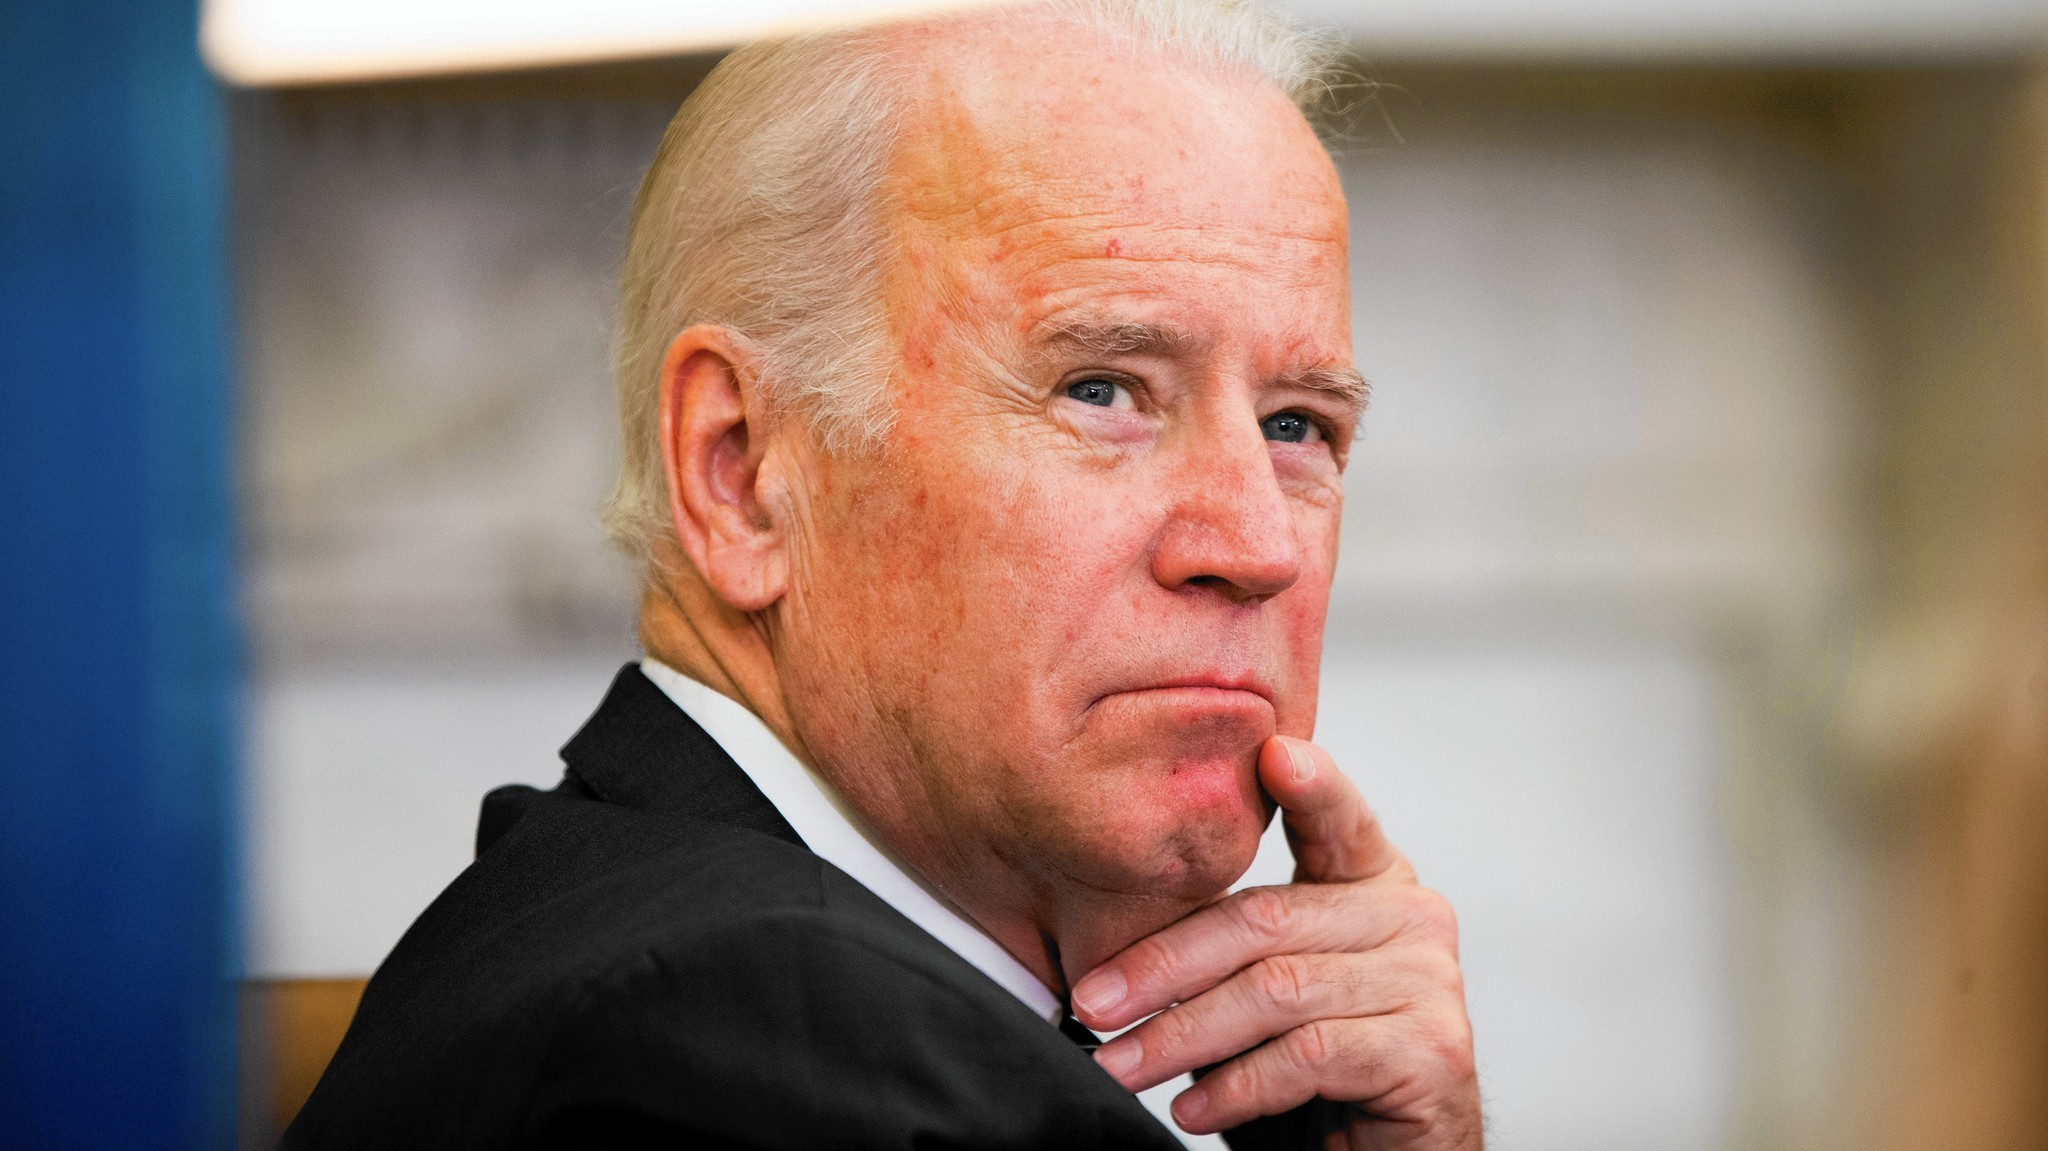 joe biden - photo #7